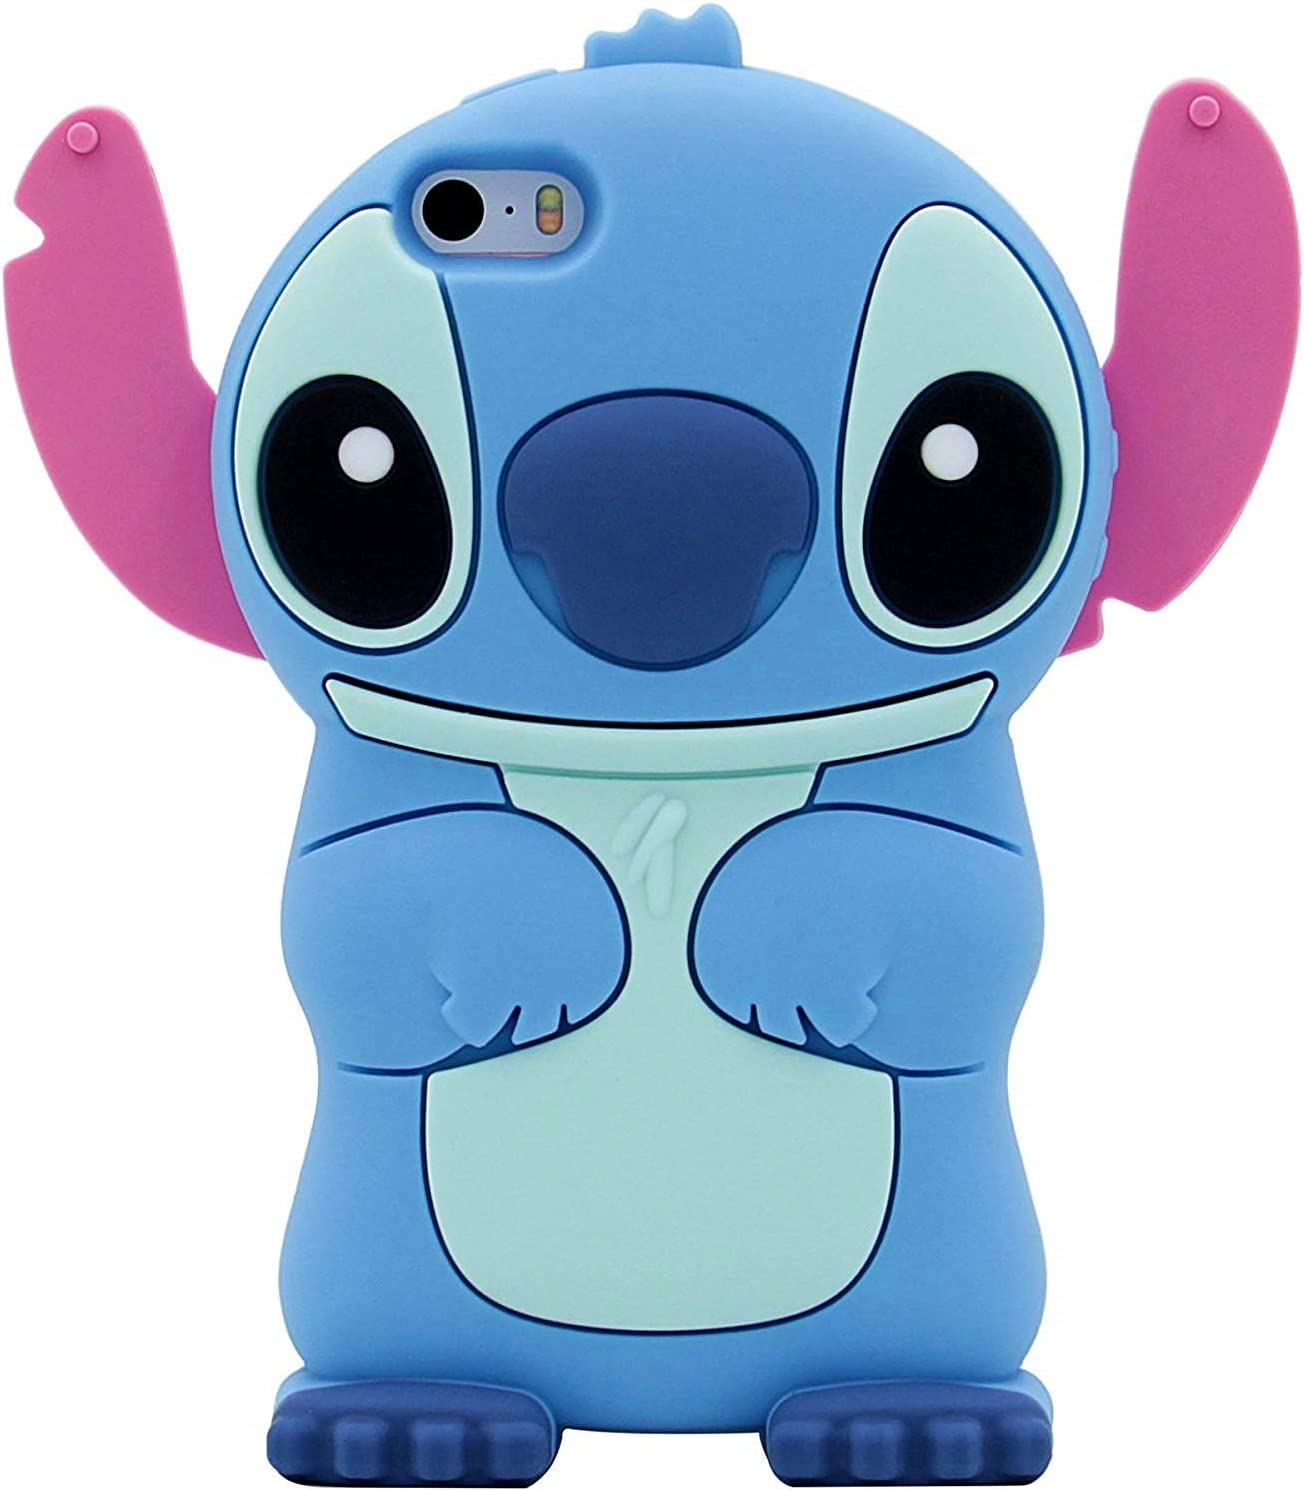 "Blue Stitch Case for iPhone 6/ 6S 4.7"",3D Cartoon Animal Cute Soft Silicone Rubber Character Cover,Kawaii Animated Funny Fashion Cool Skin Cases for Kids Child Teens Girls Guys (i6 4.7"")"